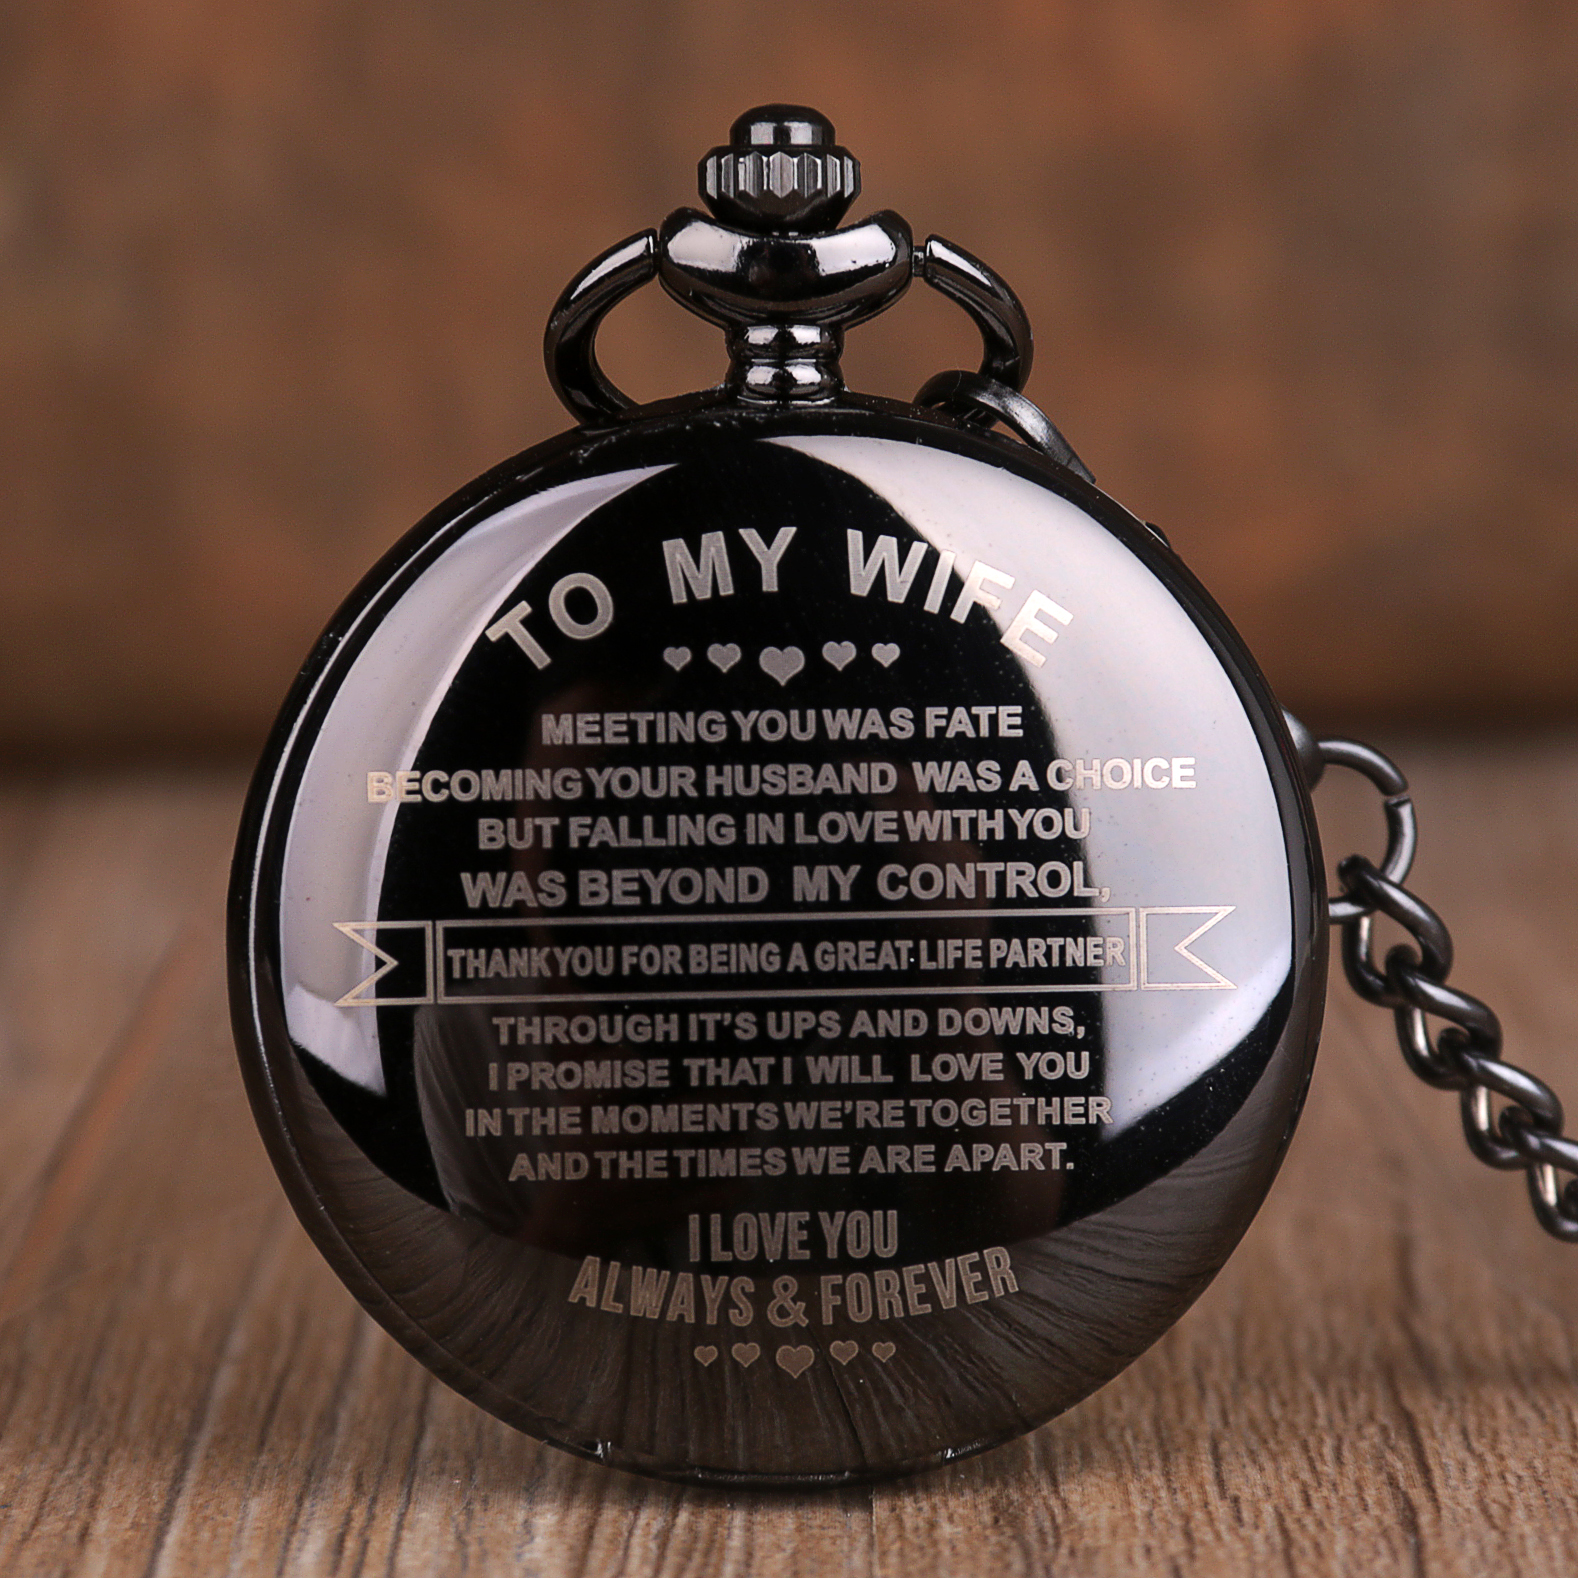 To My Wife Design Pocket Watches Retro Quartz Pocket Watches Anniversary Couples Gifts Full Black Smooth Face Pendant Clock